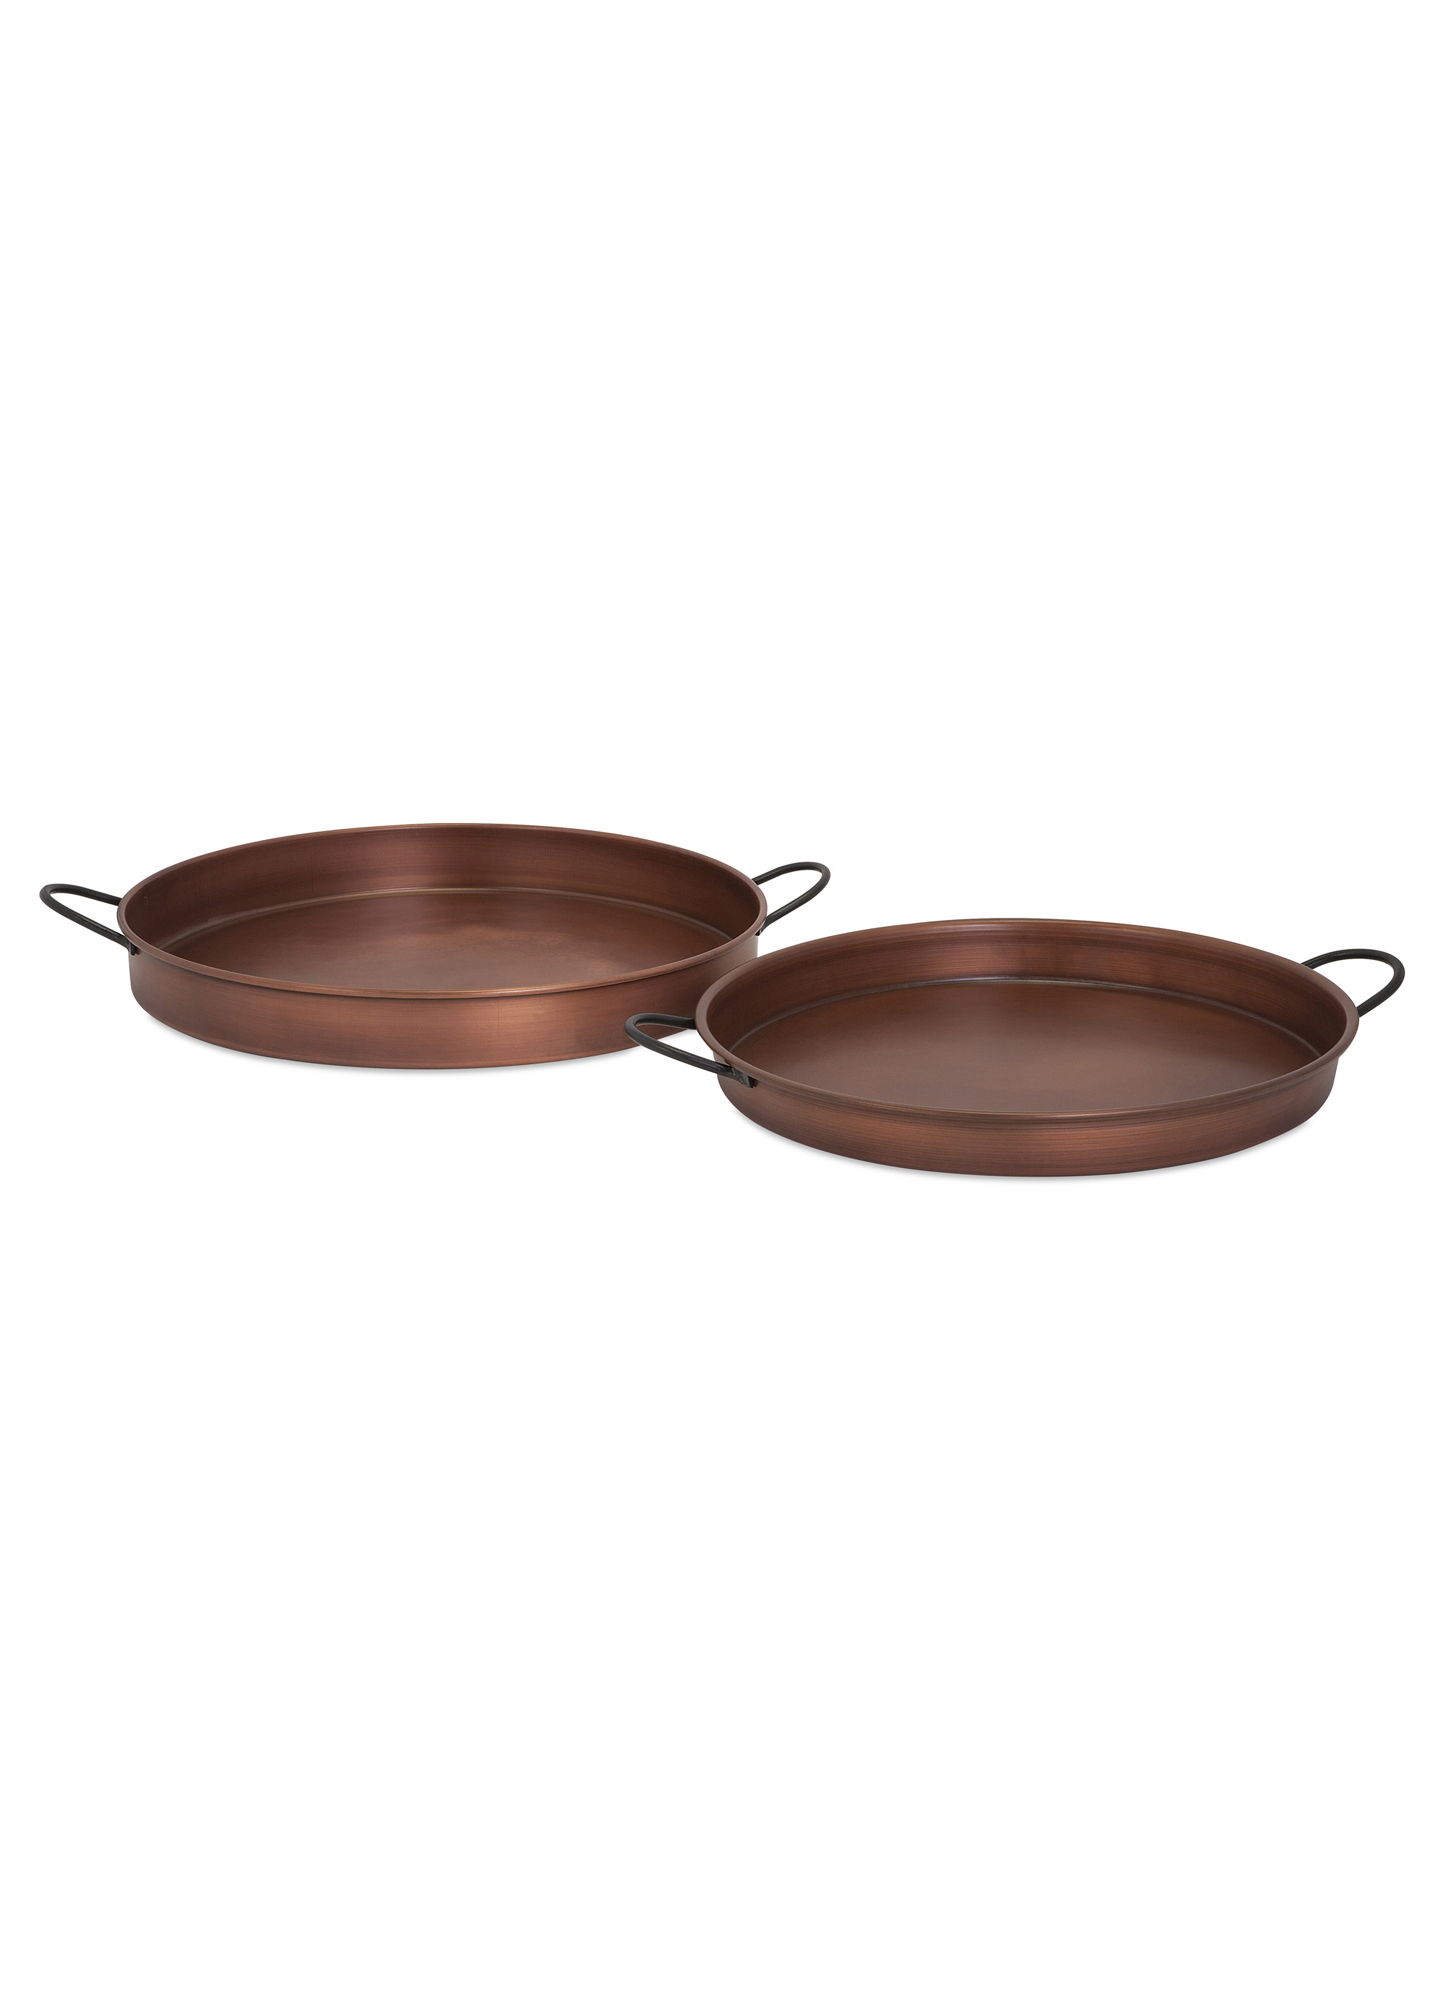 Imax 2 Piece Tarson Copper Plated Tray Set